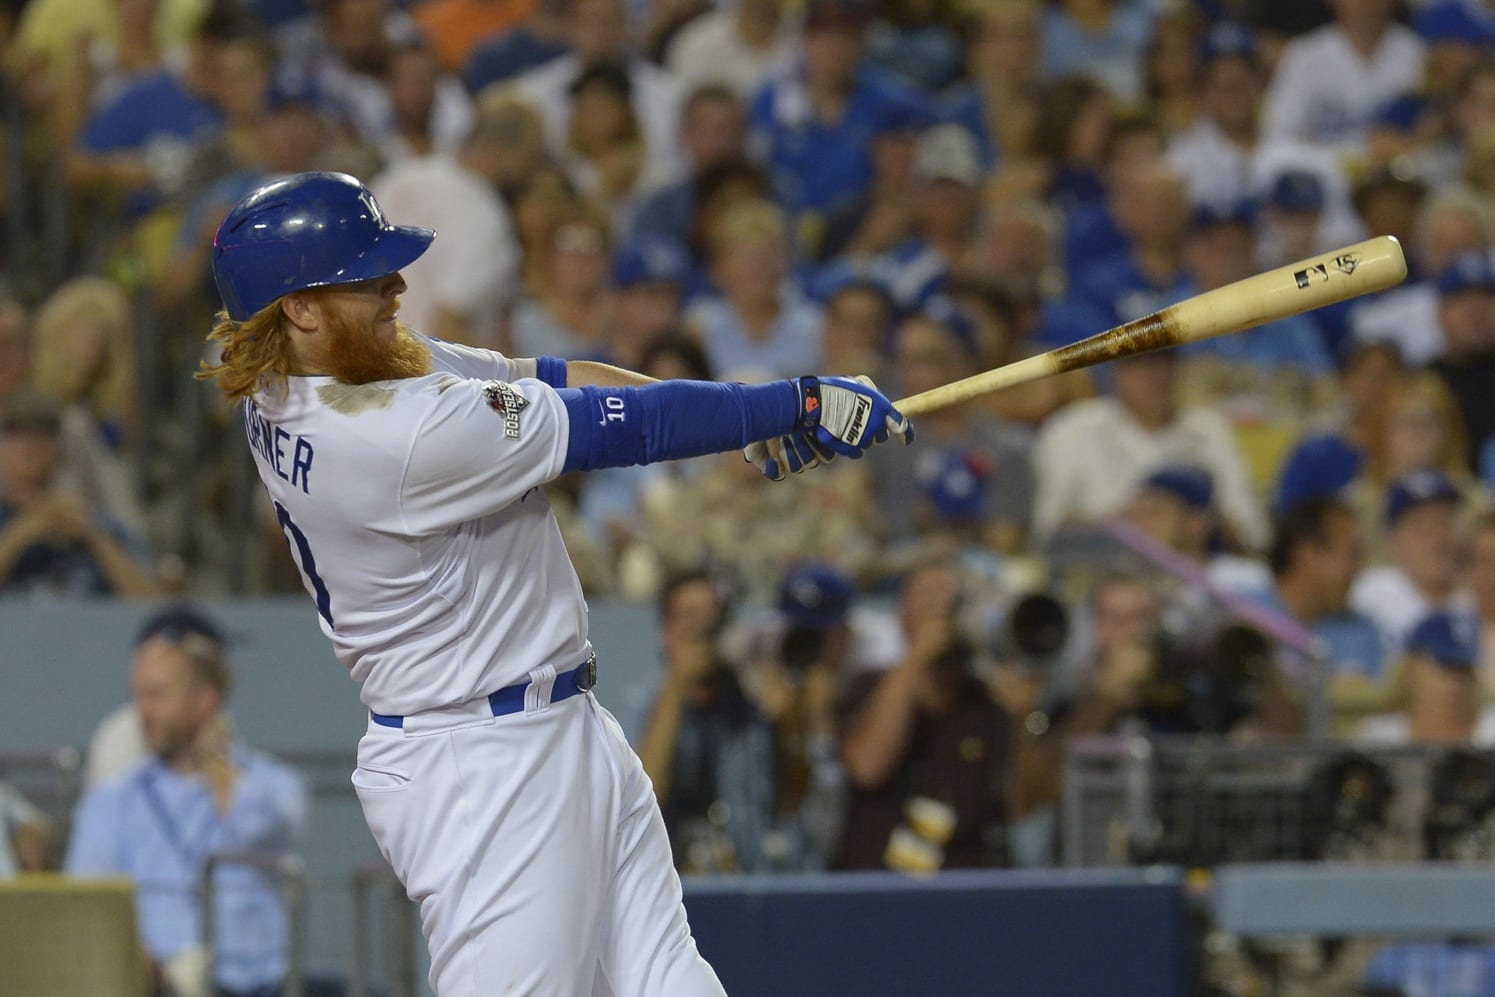 Spring Training Recap: Justin Turner Hits Grand Slam, Charlie Culberson Lifts Dodgers To Walk-off Win